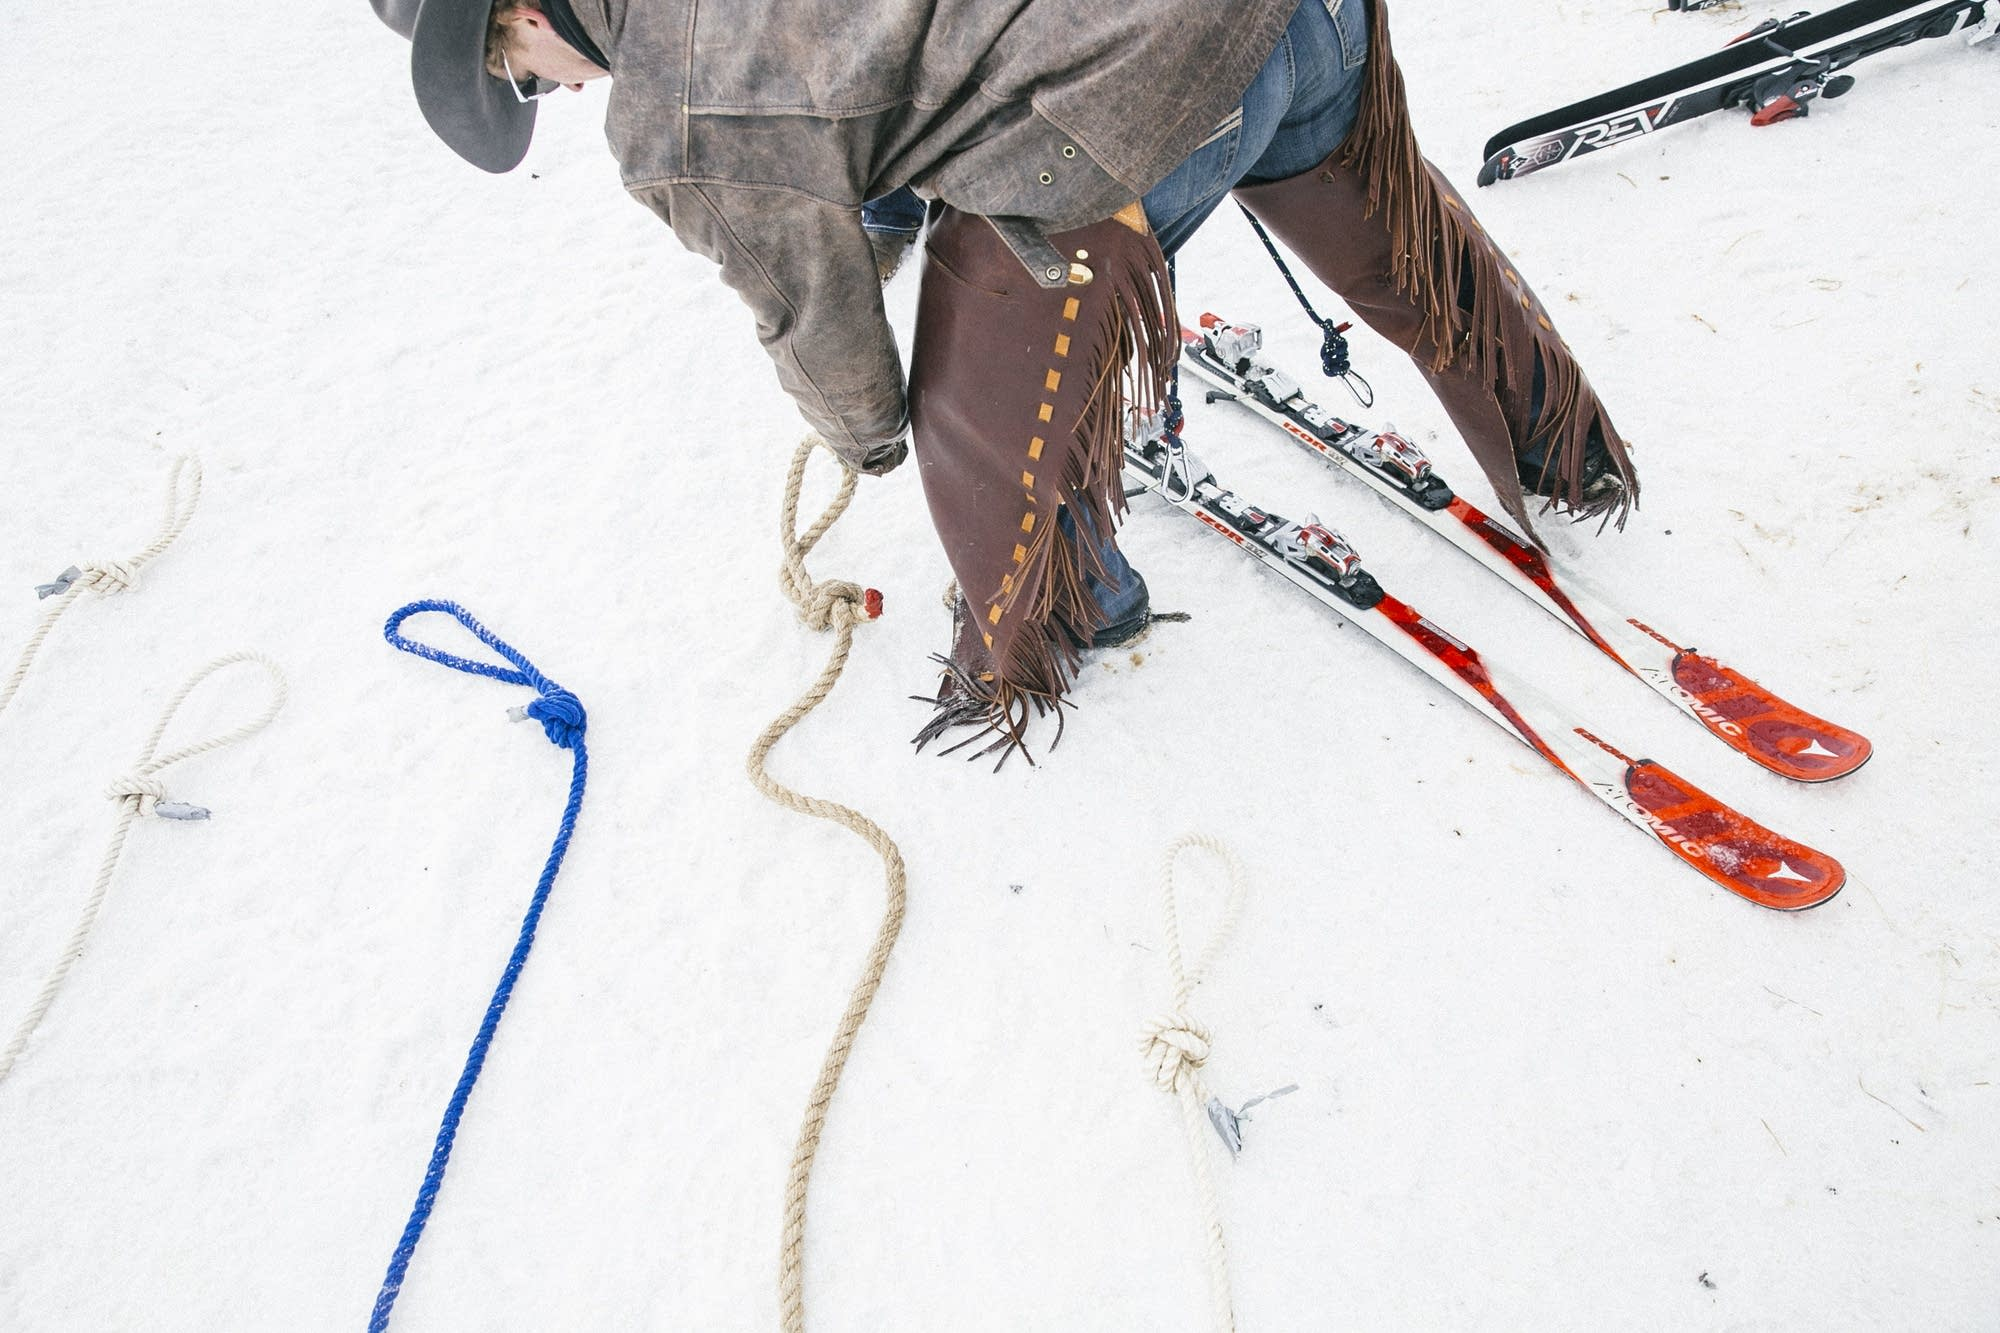 A racer lays out ropes that will pull skiers down a track full of jumps.